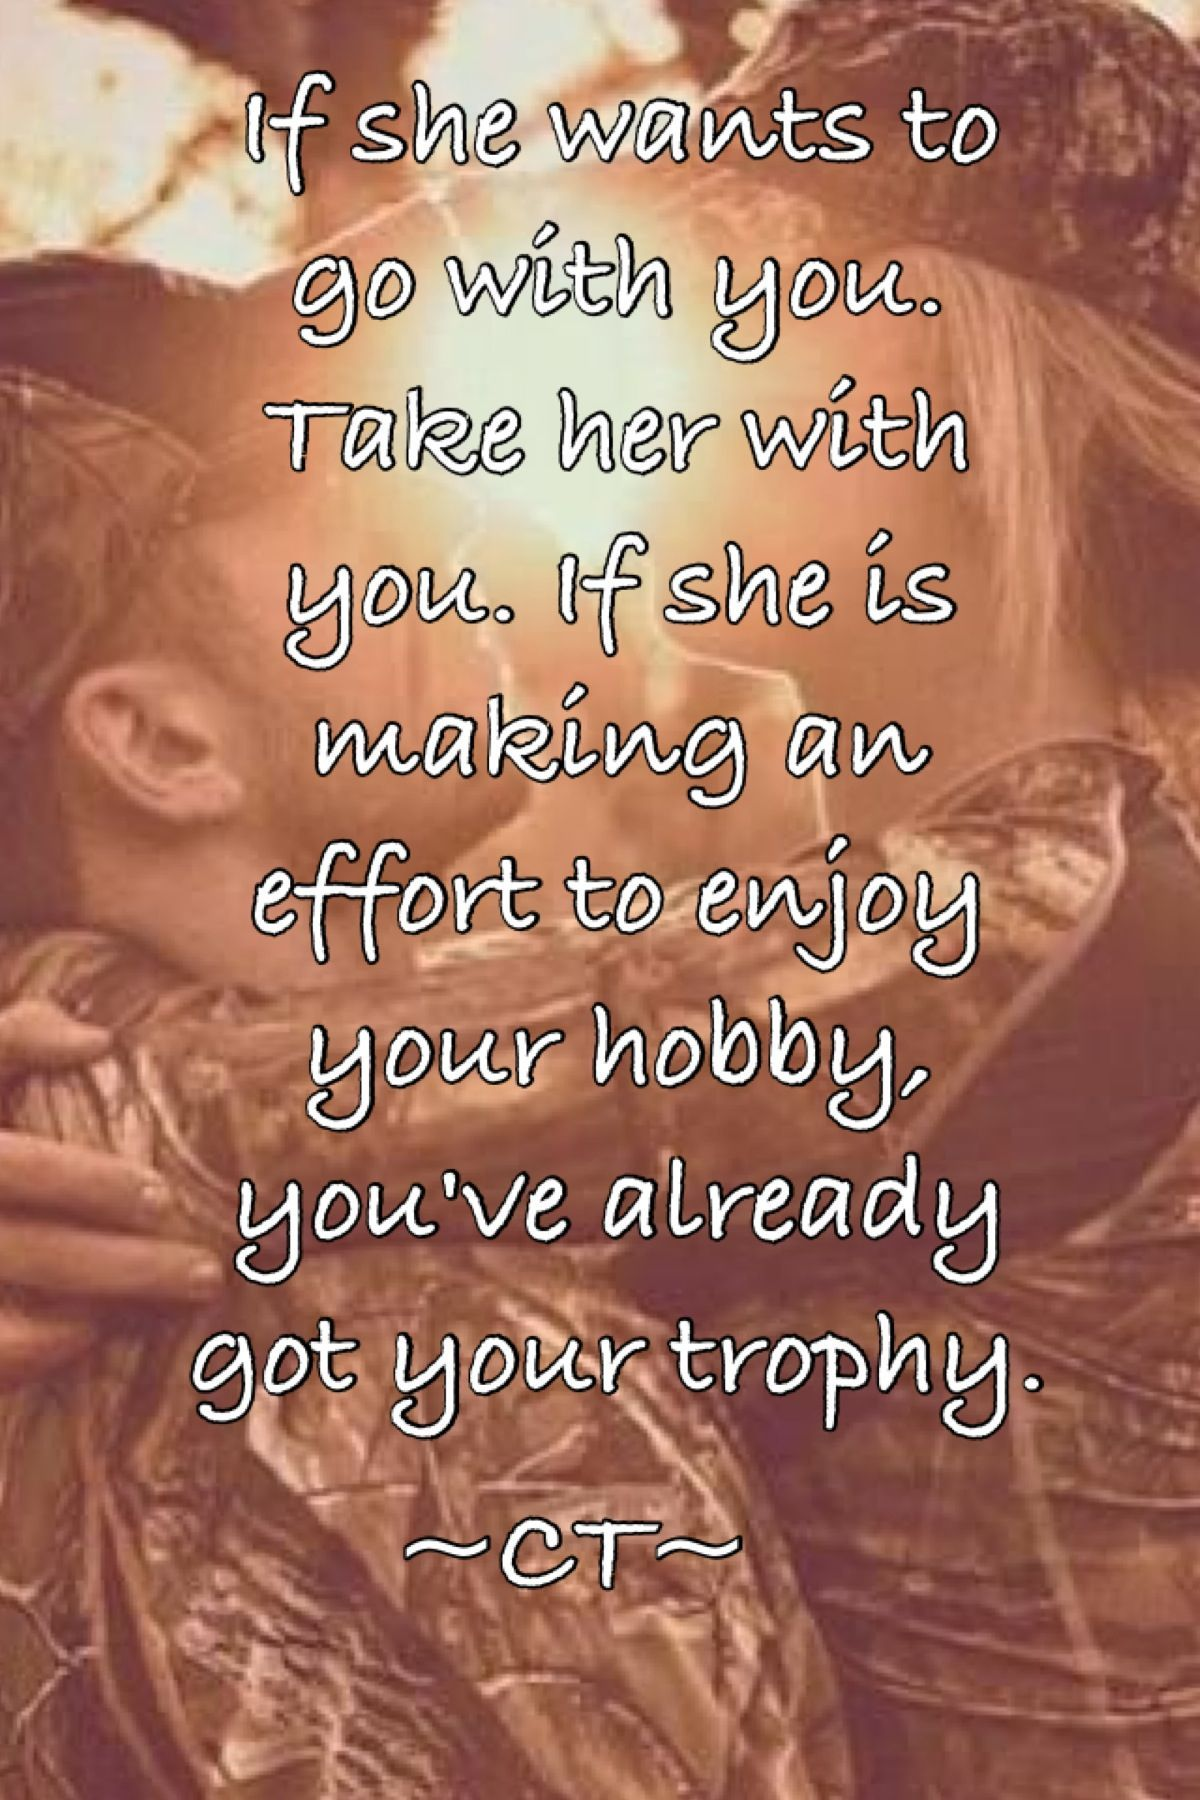 4c5963276b3b6c4f16aef81ba90da60b Jpg 1 200 1 800 Pixels Country Girl Quotes Hunting Quotes Country Quotes